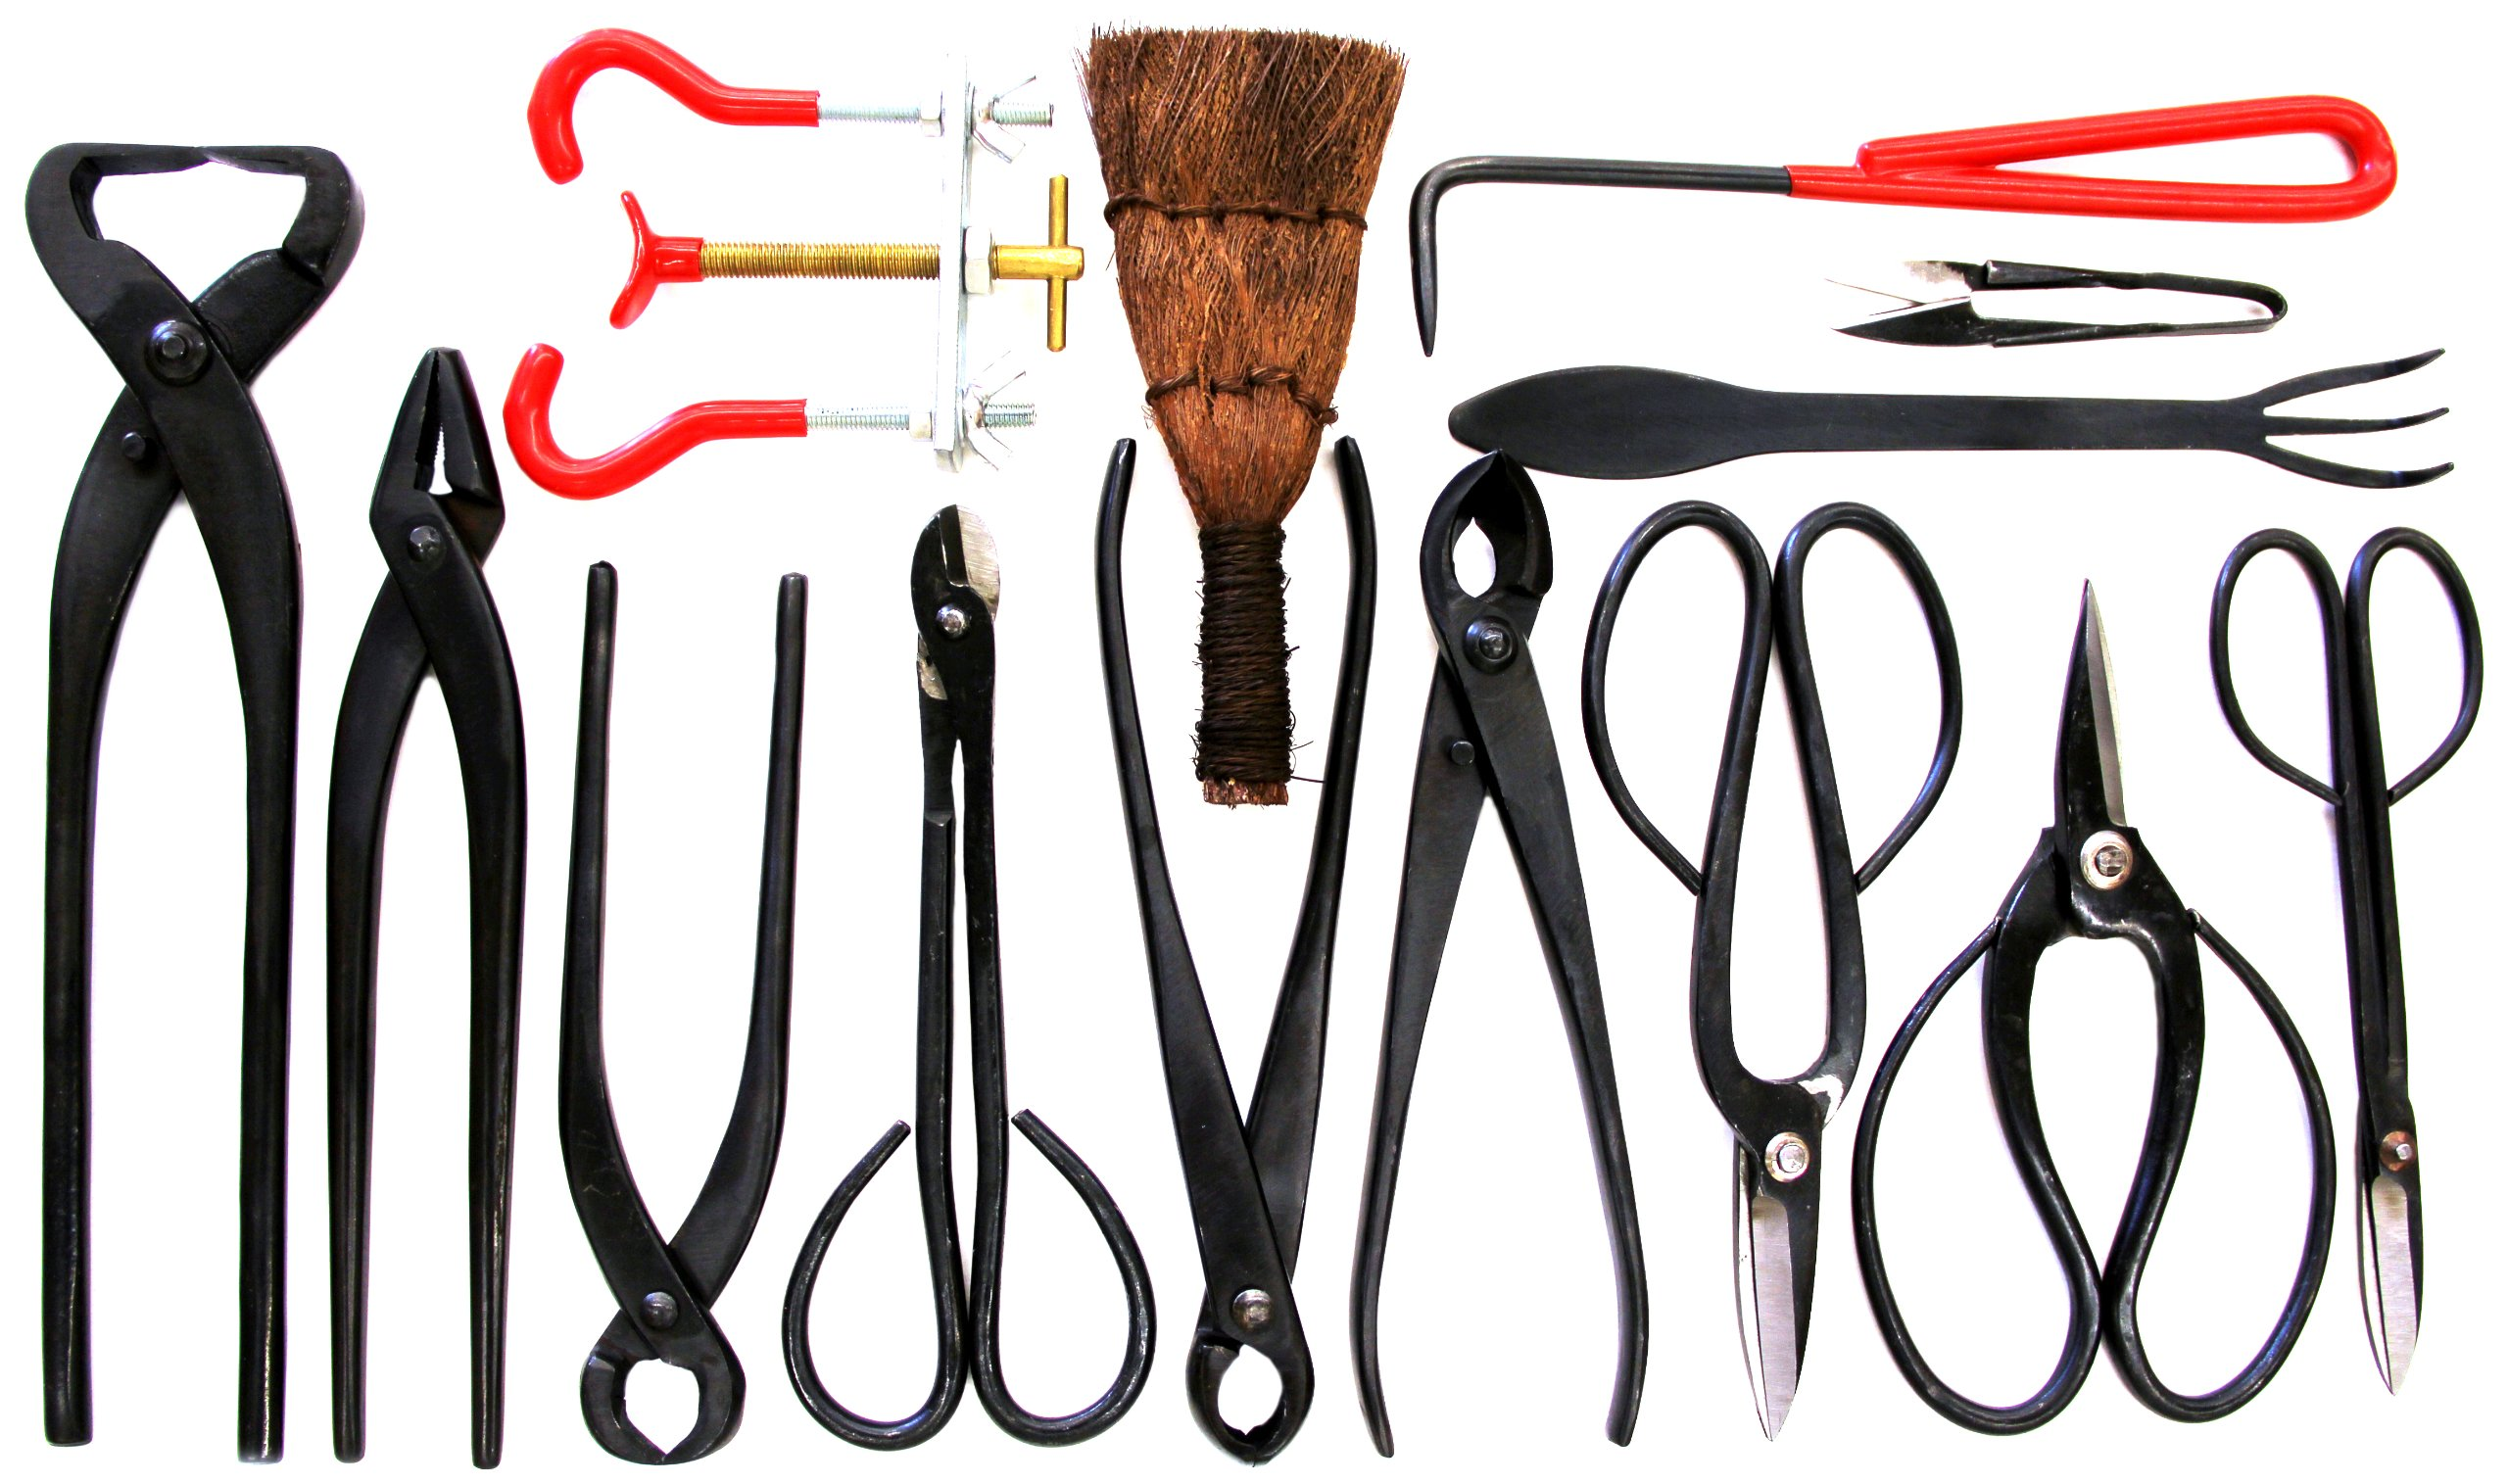 Stanwood Bonsai Tool 14-Piece Carbon Steel Shear Set and Tool Kit Discontinued by Manufacturer